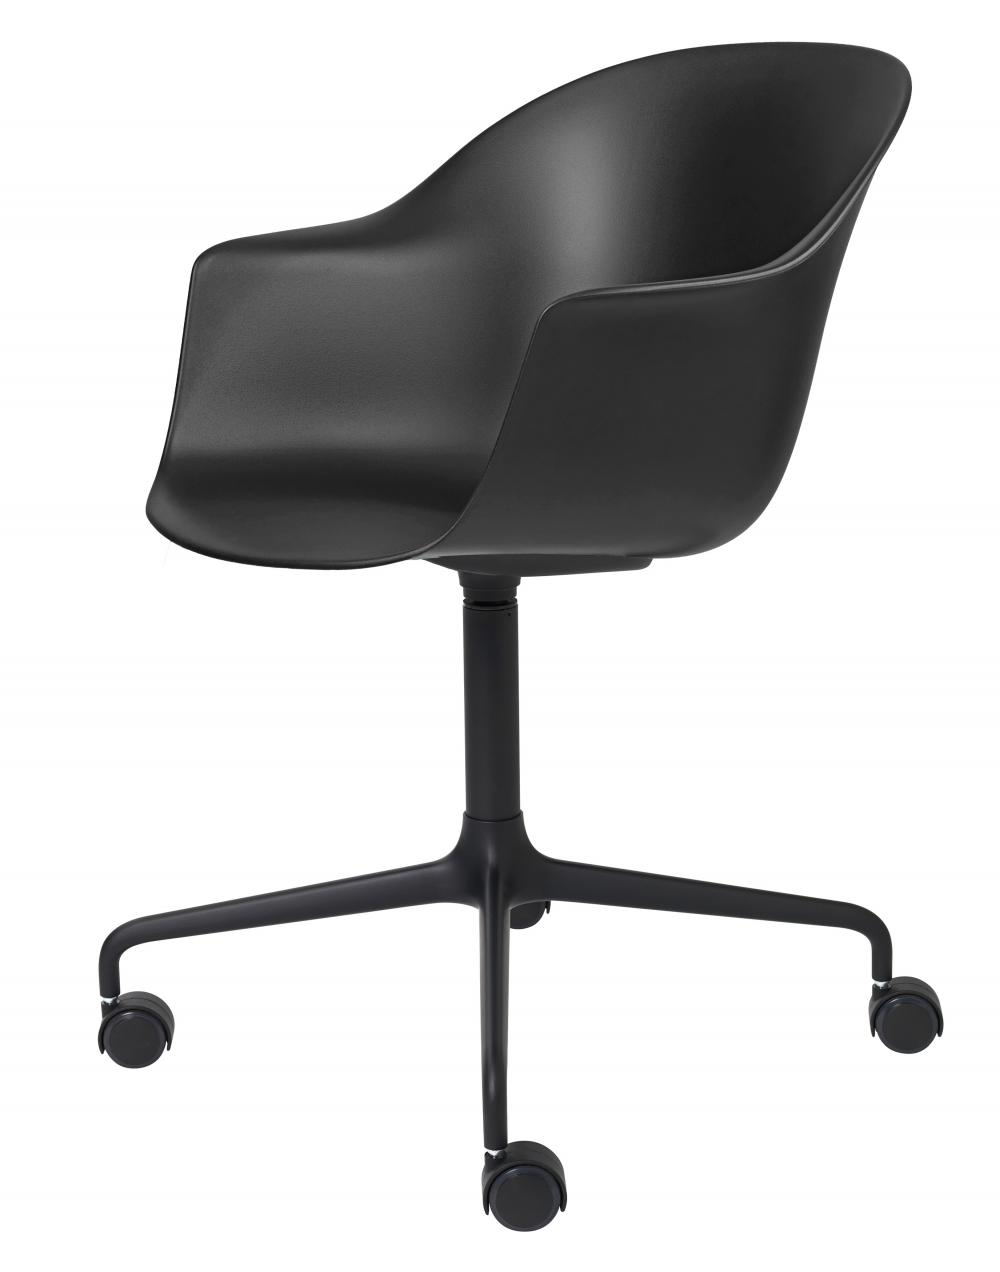 Bat meeting chair - 4 star swivel base with castors - un-upholstered